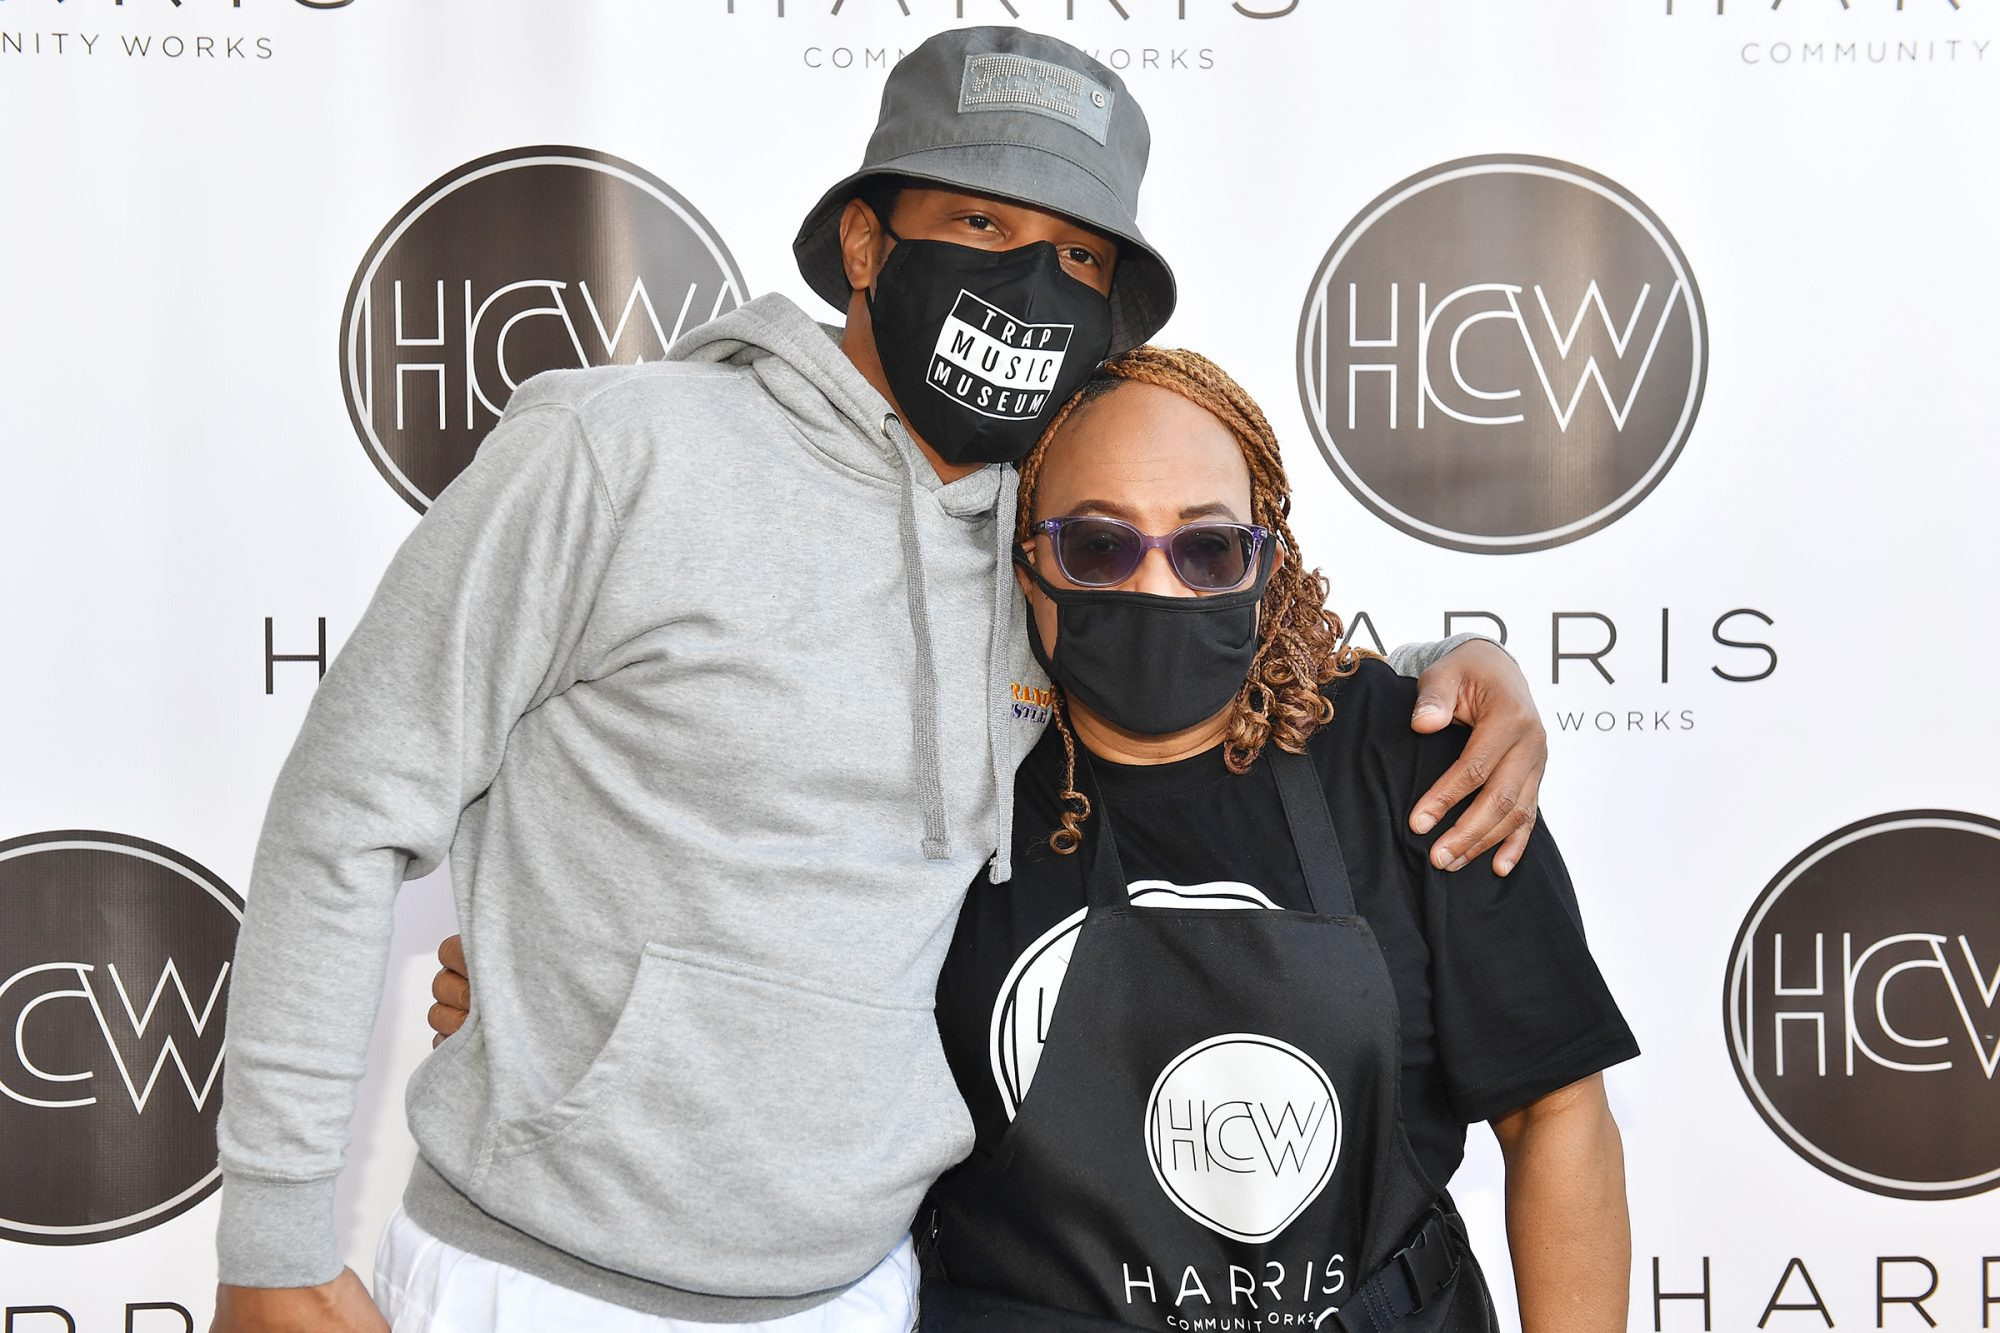 T.I. poses with his mother Violeta Morgan during Harris Community Works 15th Annual Turkey Giveaway at Jackson Memorial Baptist Church on November 24, 2020 in Atlanta